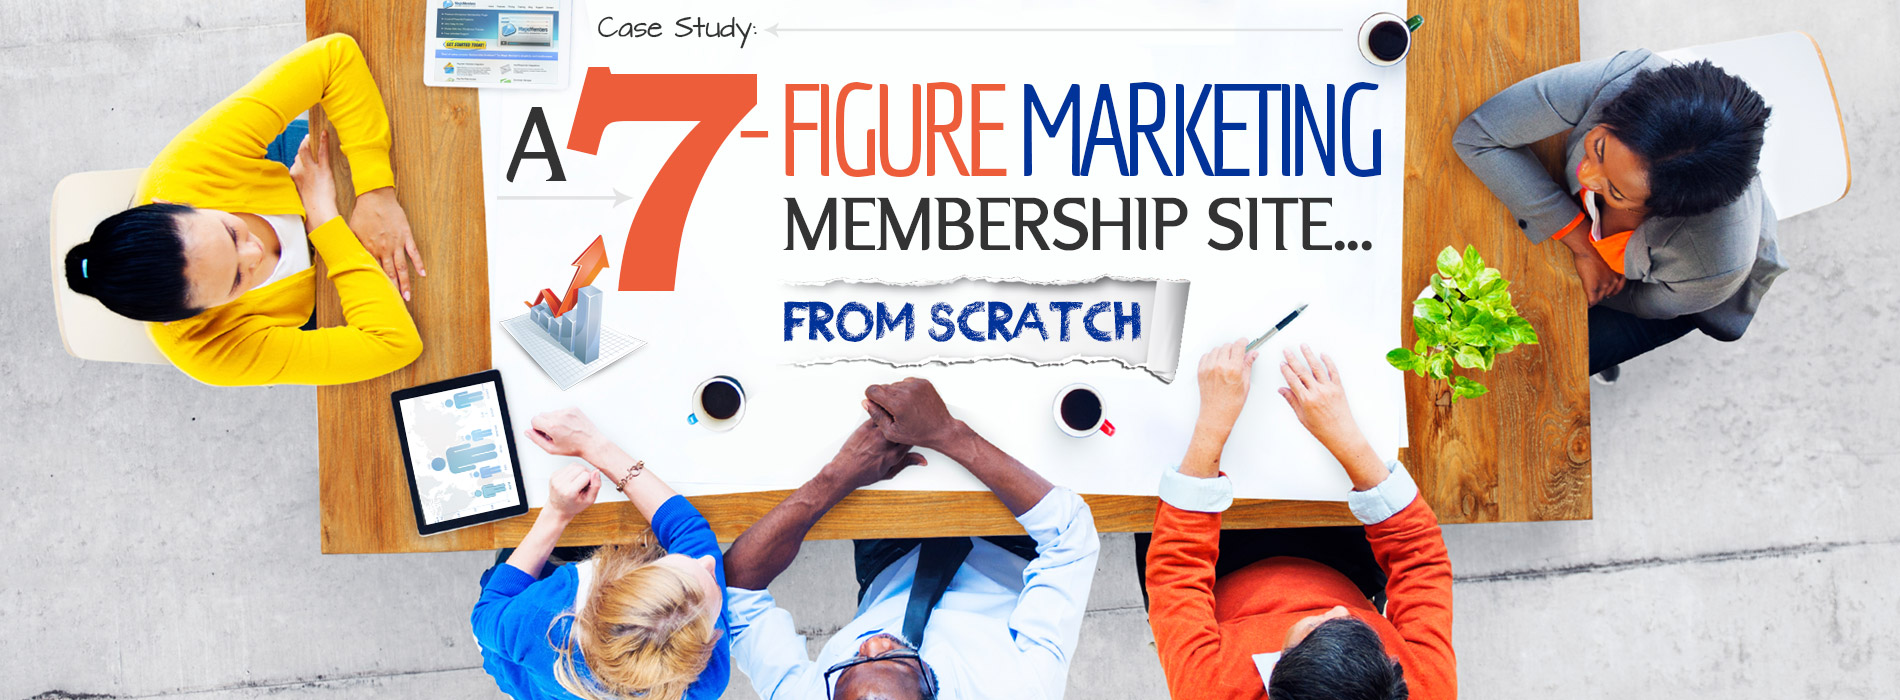 7 figure-marketing membership site